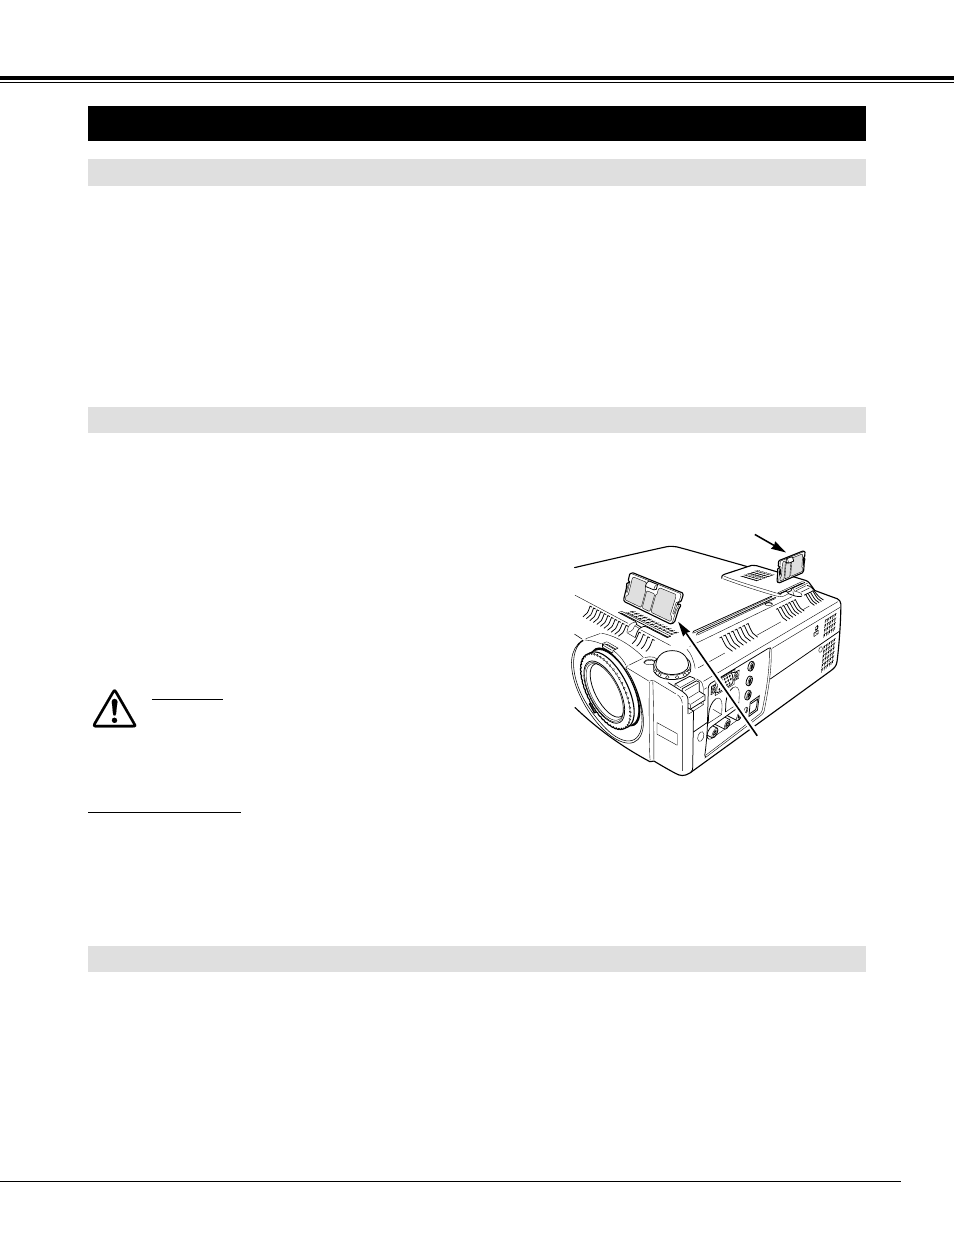 Appendix, Maintenance, Warning temp. indicator | Air filter care and  cleaning, Cleaning